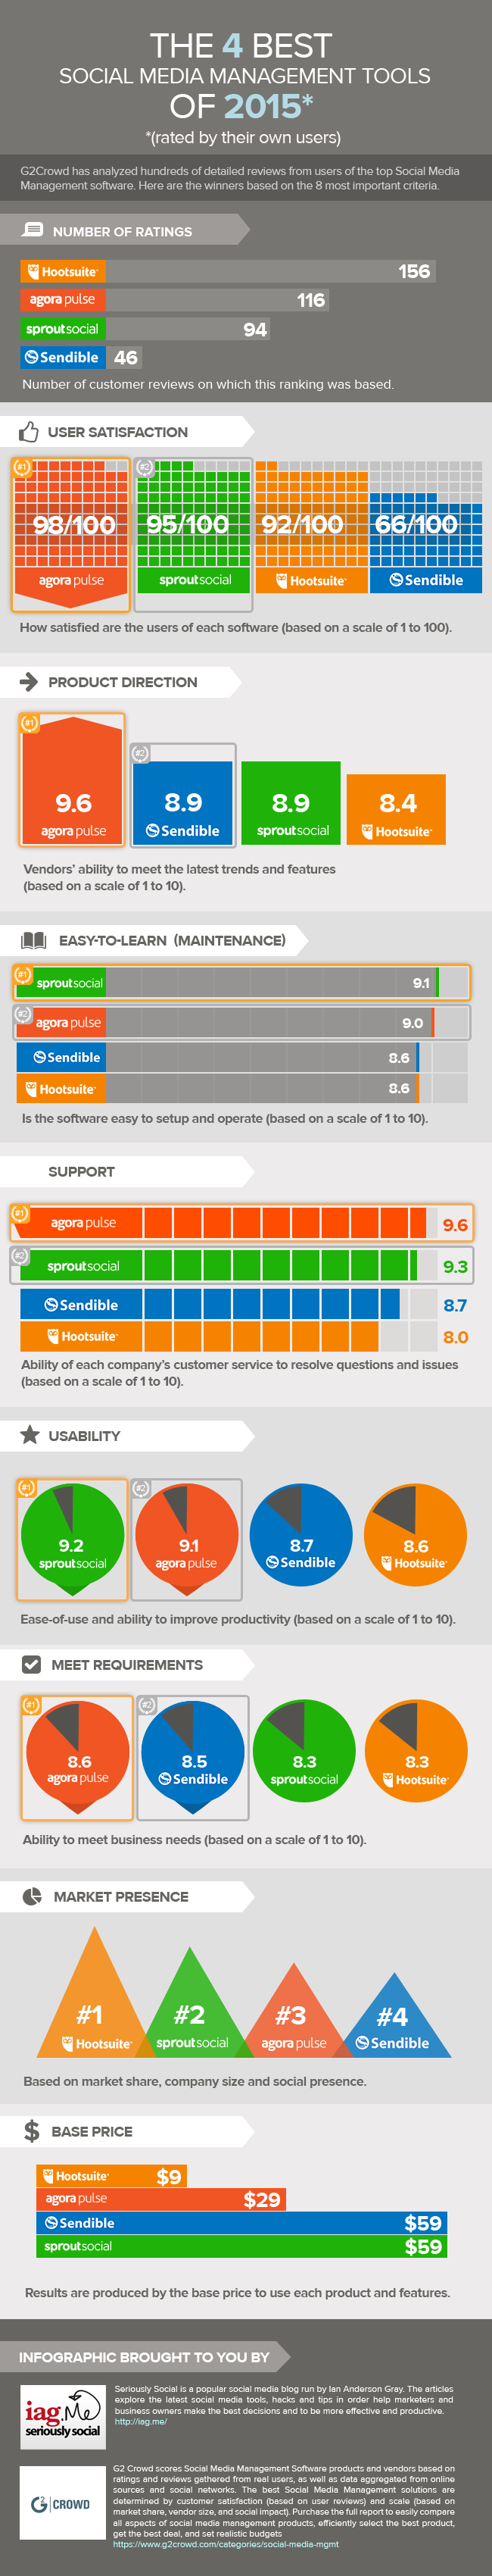 the-4-best-social-media-management-tools-of-2015-infographic